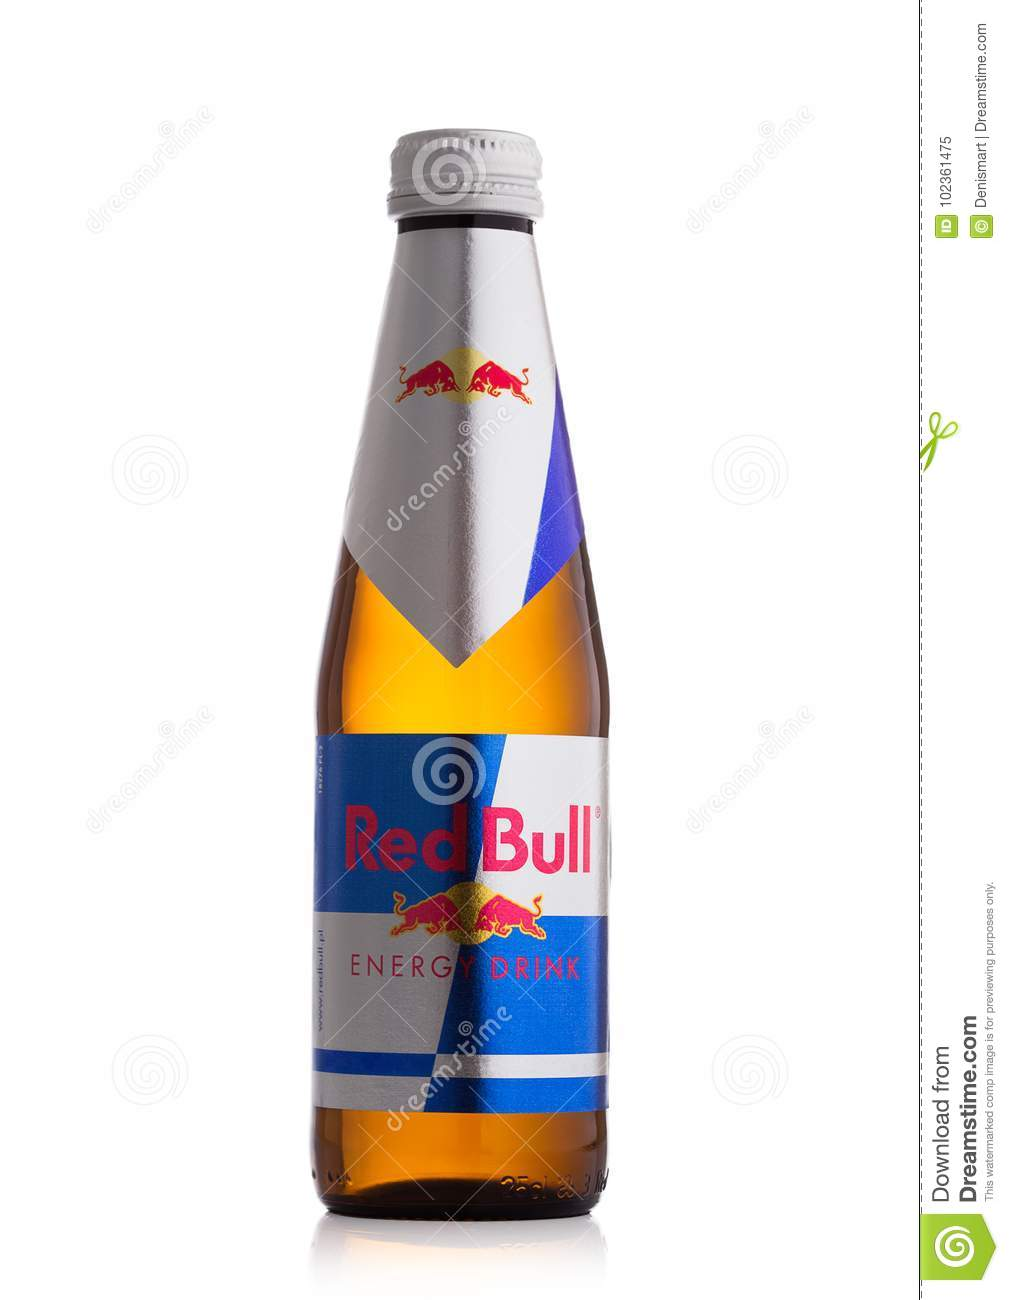 london uk october 20 2017 glass bottle of red bull energy drink on white background red